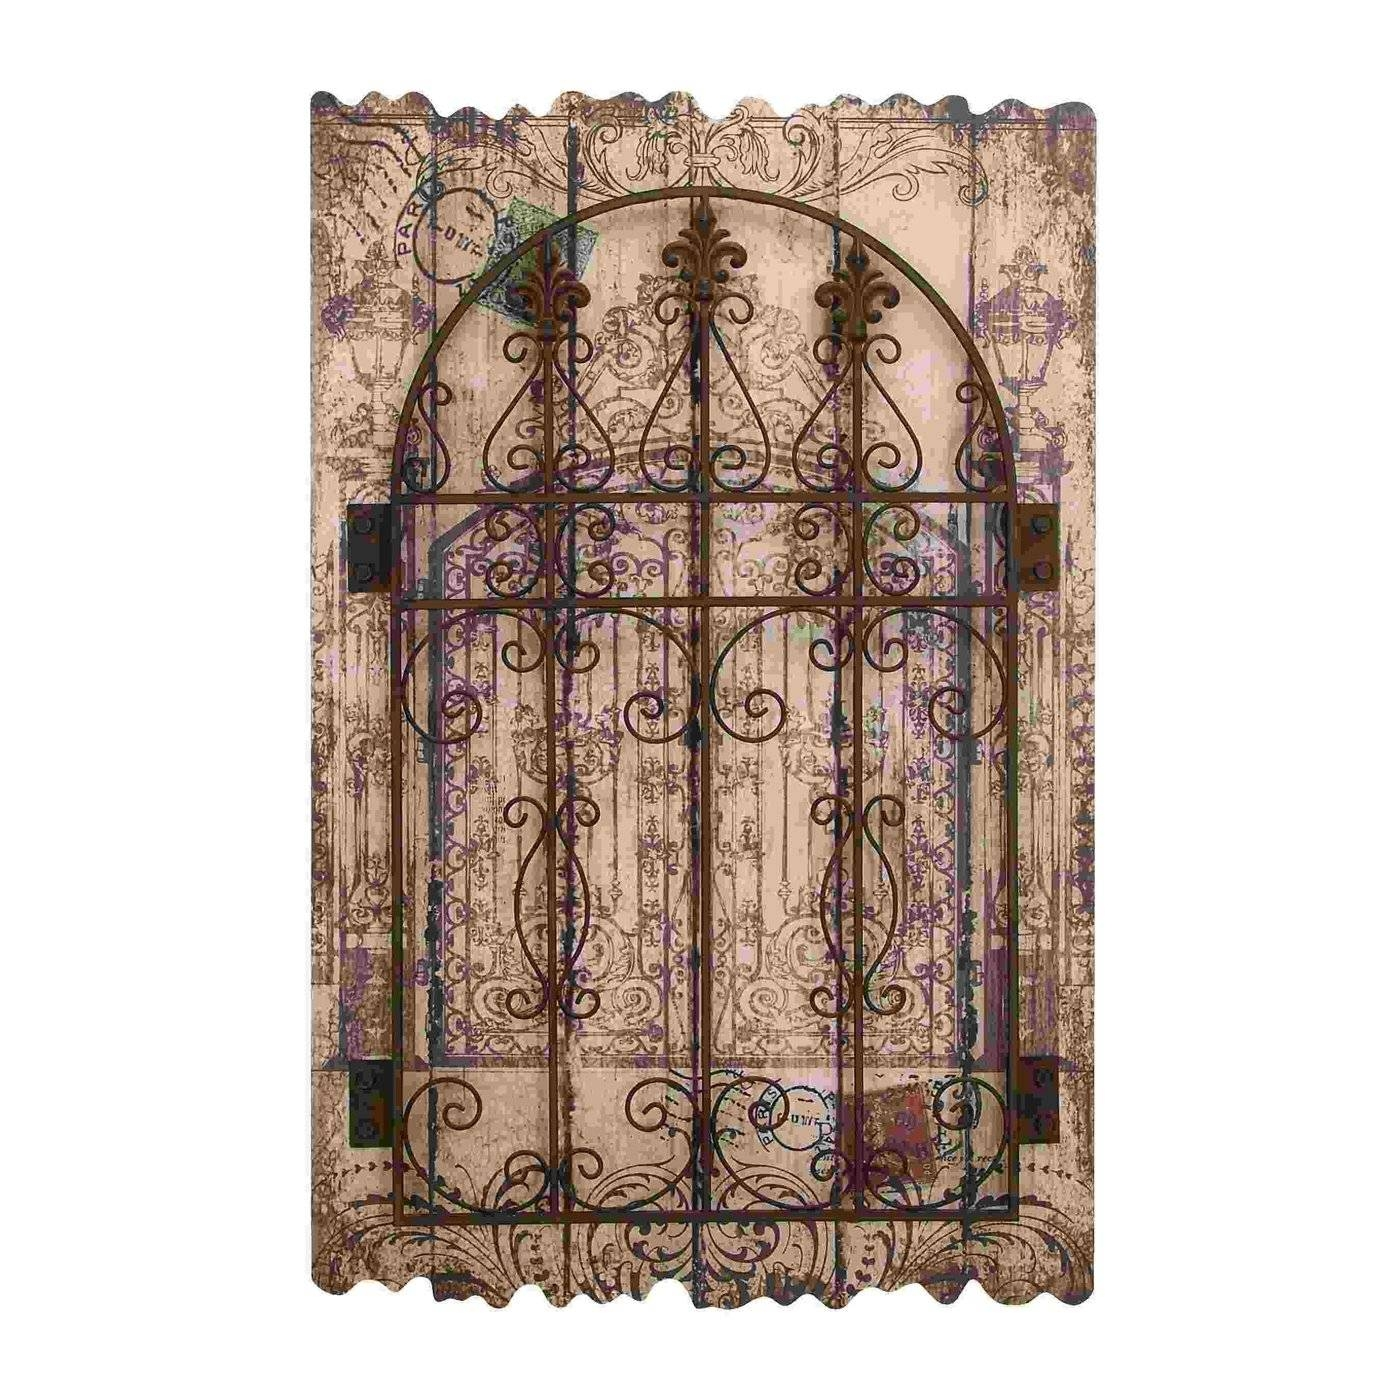 Wall Art Designs: Rustic Wood And Metal Wall Art Transitional Pertaining To 2017 Wood And Metal Wall Art (View 8 of 20)